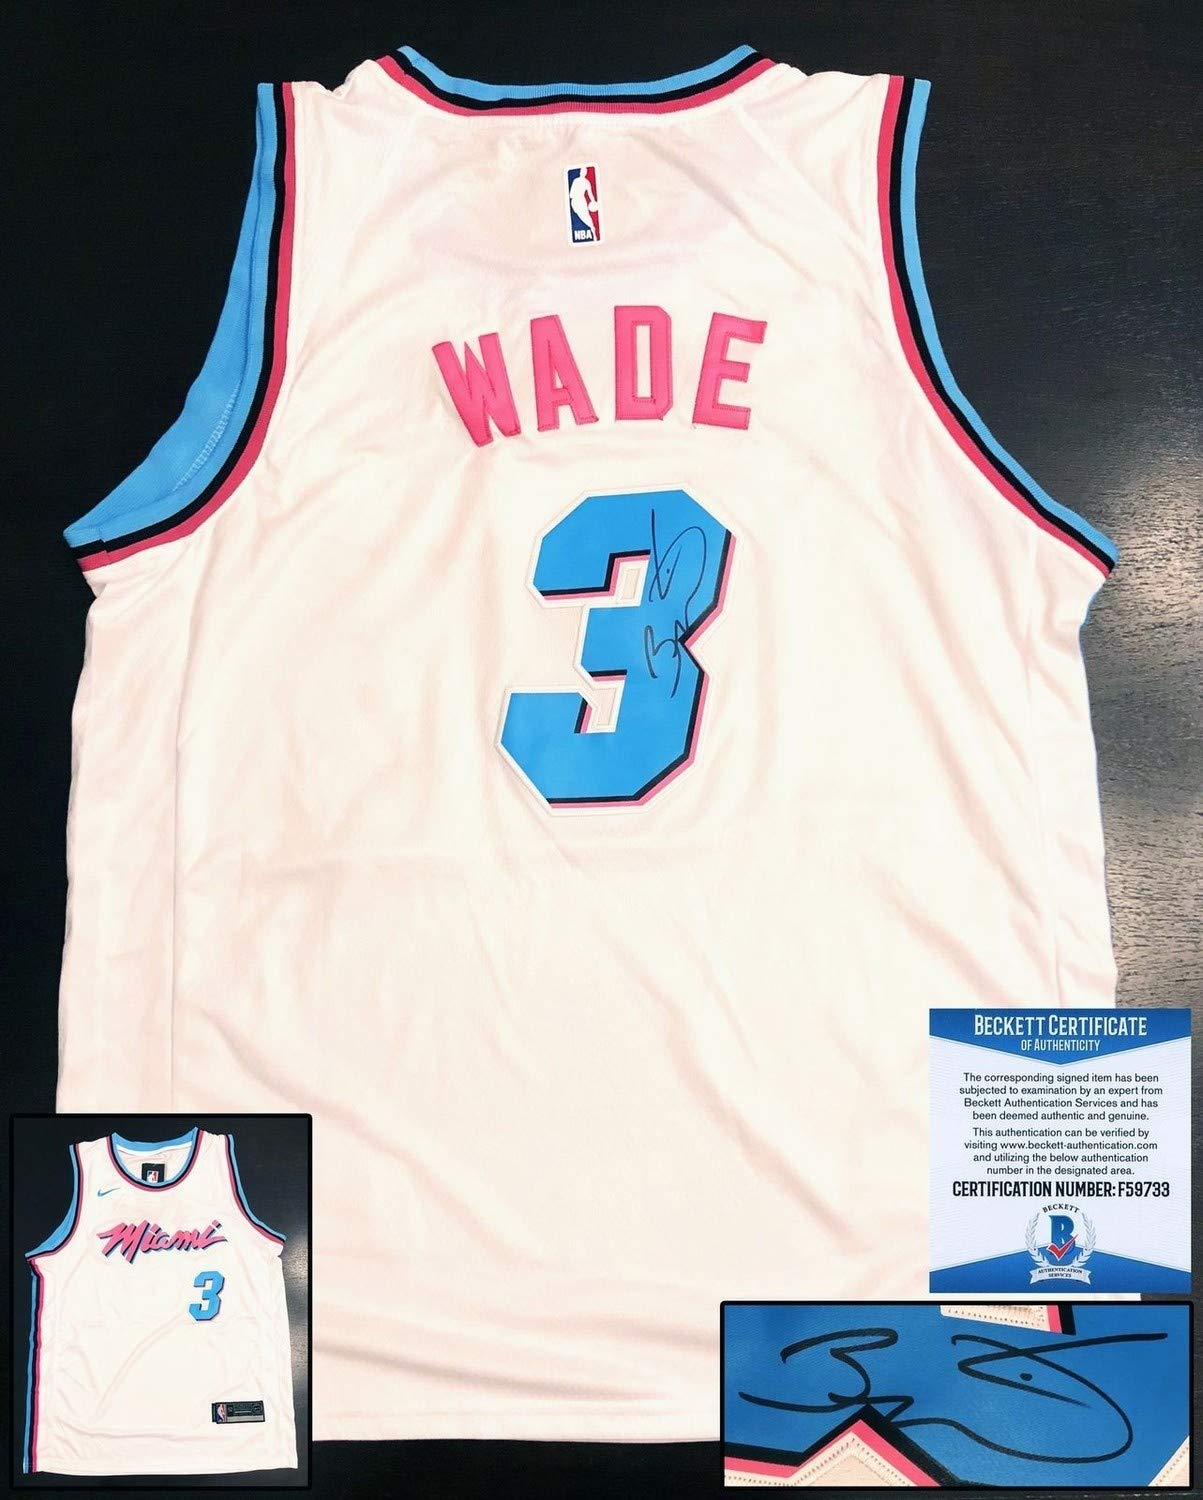 wholesale dealer 0954d 38e00 Miami Heat Dwyane Wade Autographed Signed Miami Vice Jersey ...